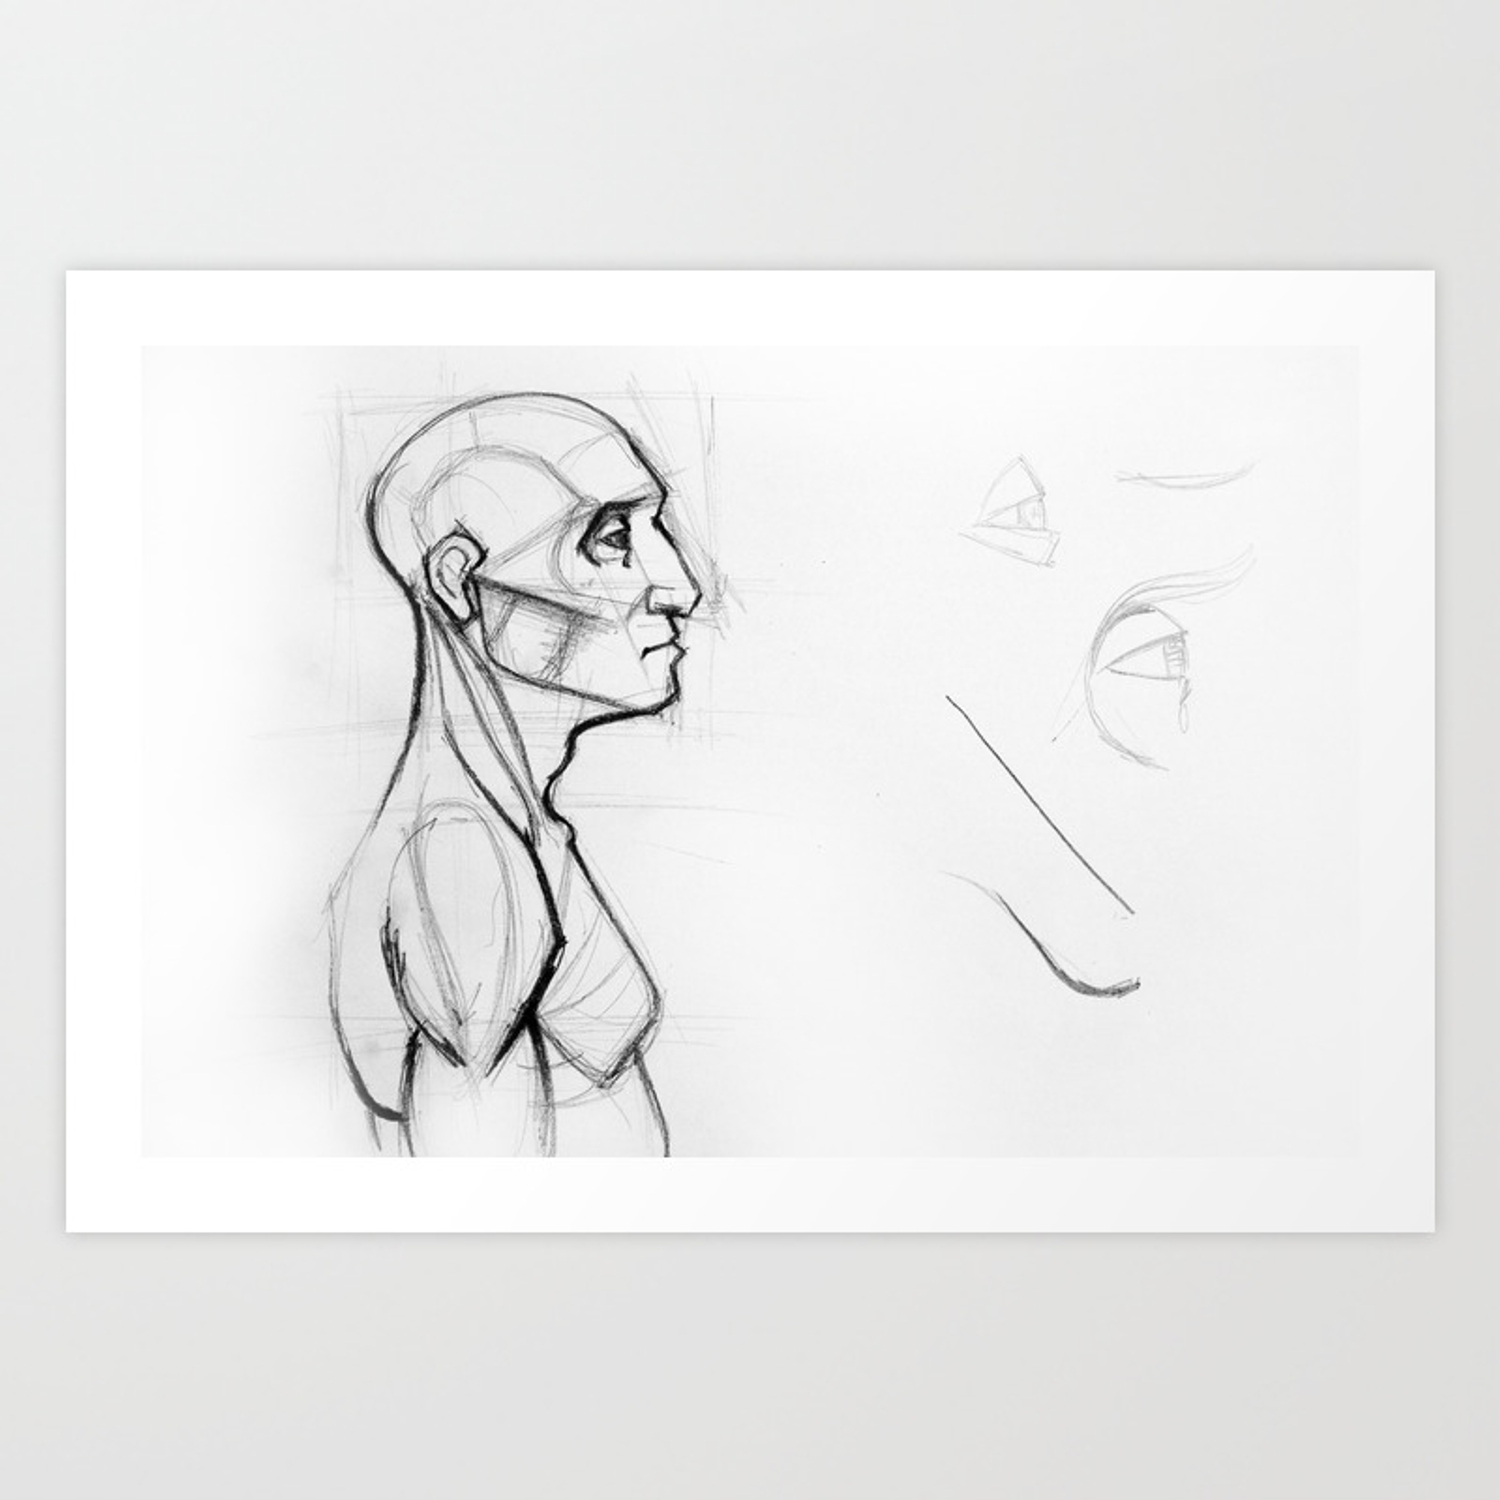 Outline drawing sketch of side profile of a human male head and torso anatomy illustration art print